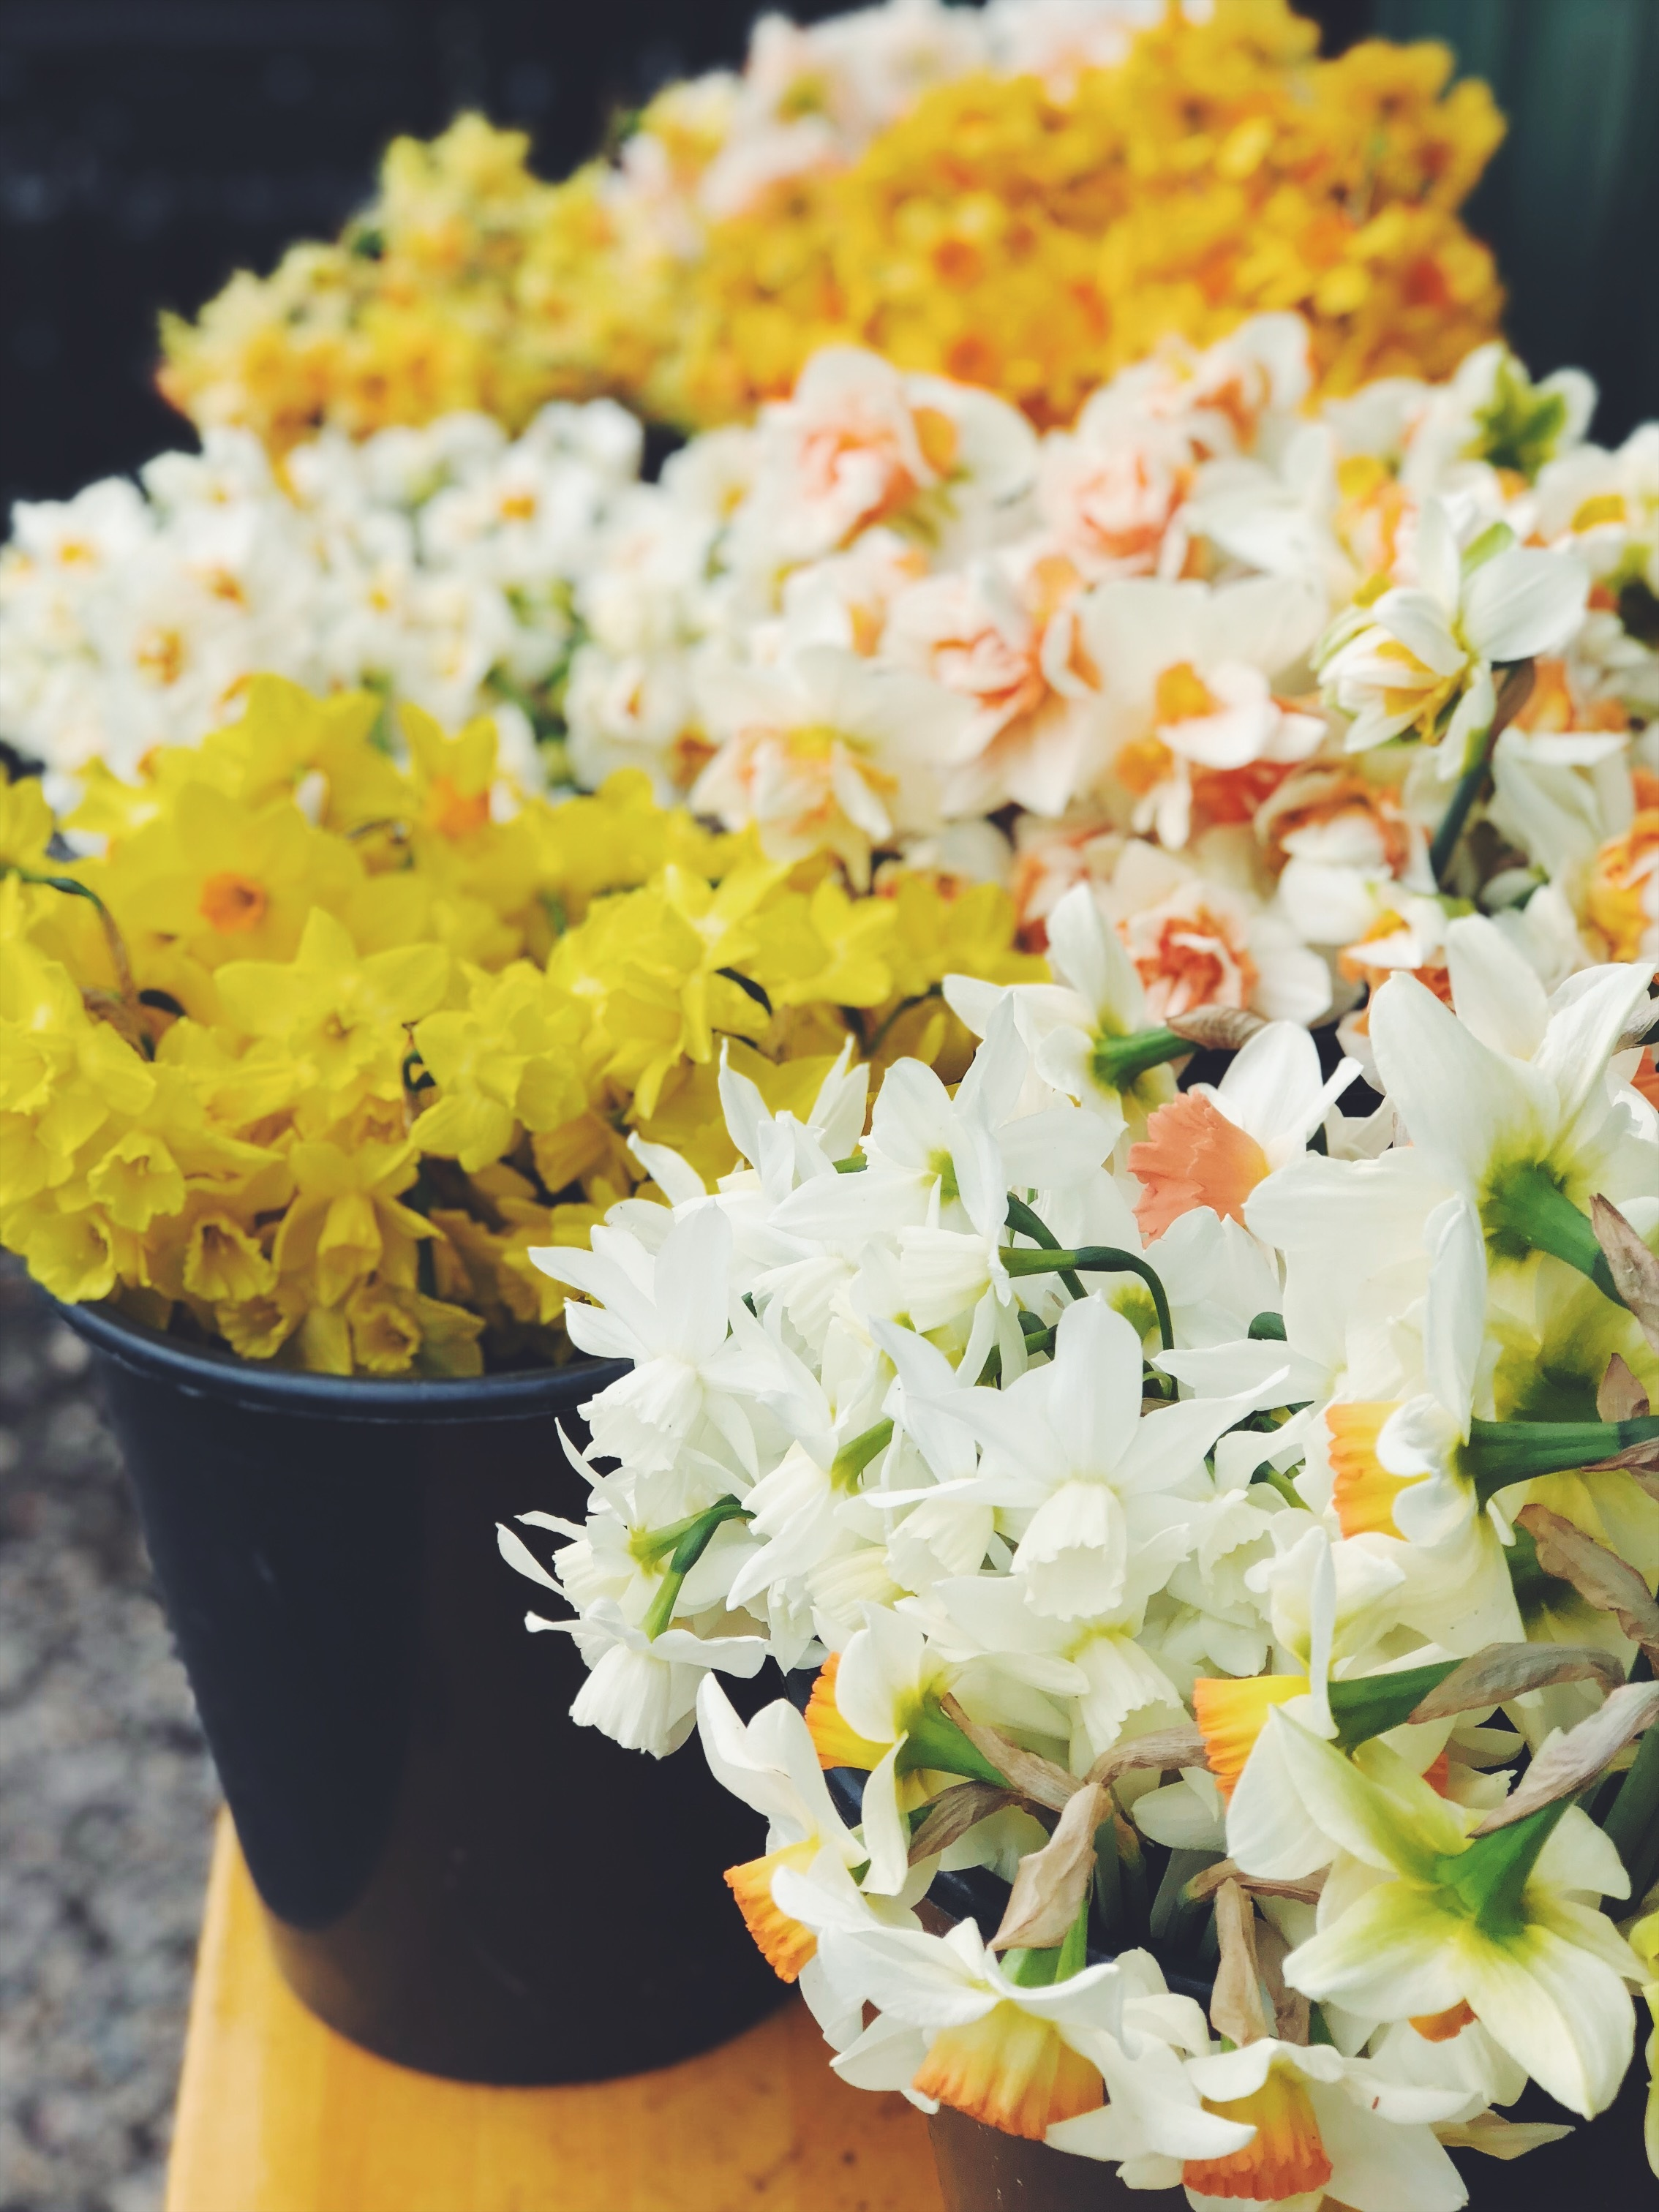 SUPPORT LOCAL FLOWERS - SEASONAL AND SUSTAINABLY GROWN, WITH NO PESTICIDES OR HERBICIDES.